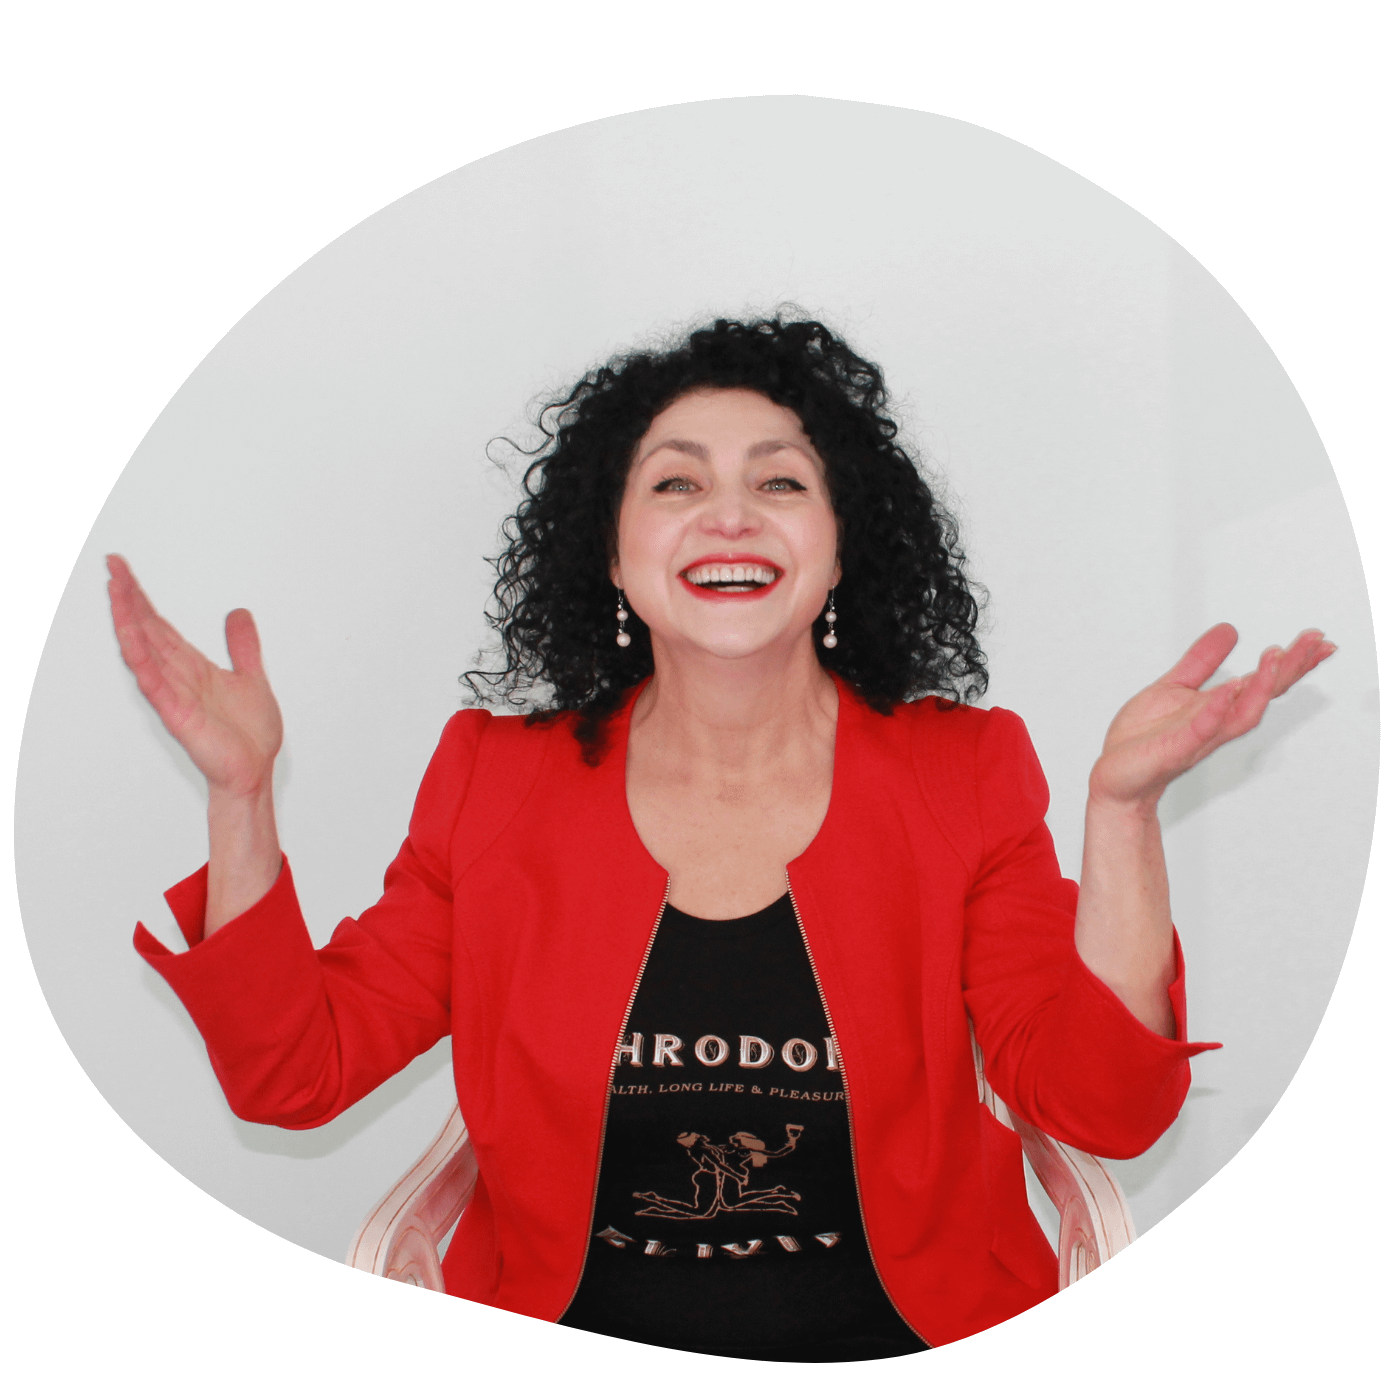 Lillian Zeltser poses in a red blazer with her hands raised and smiling